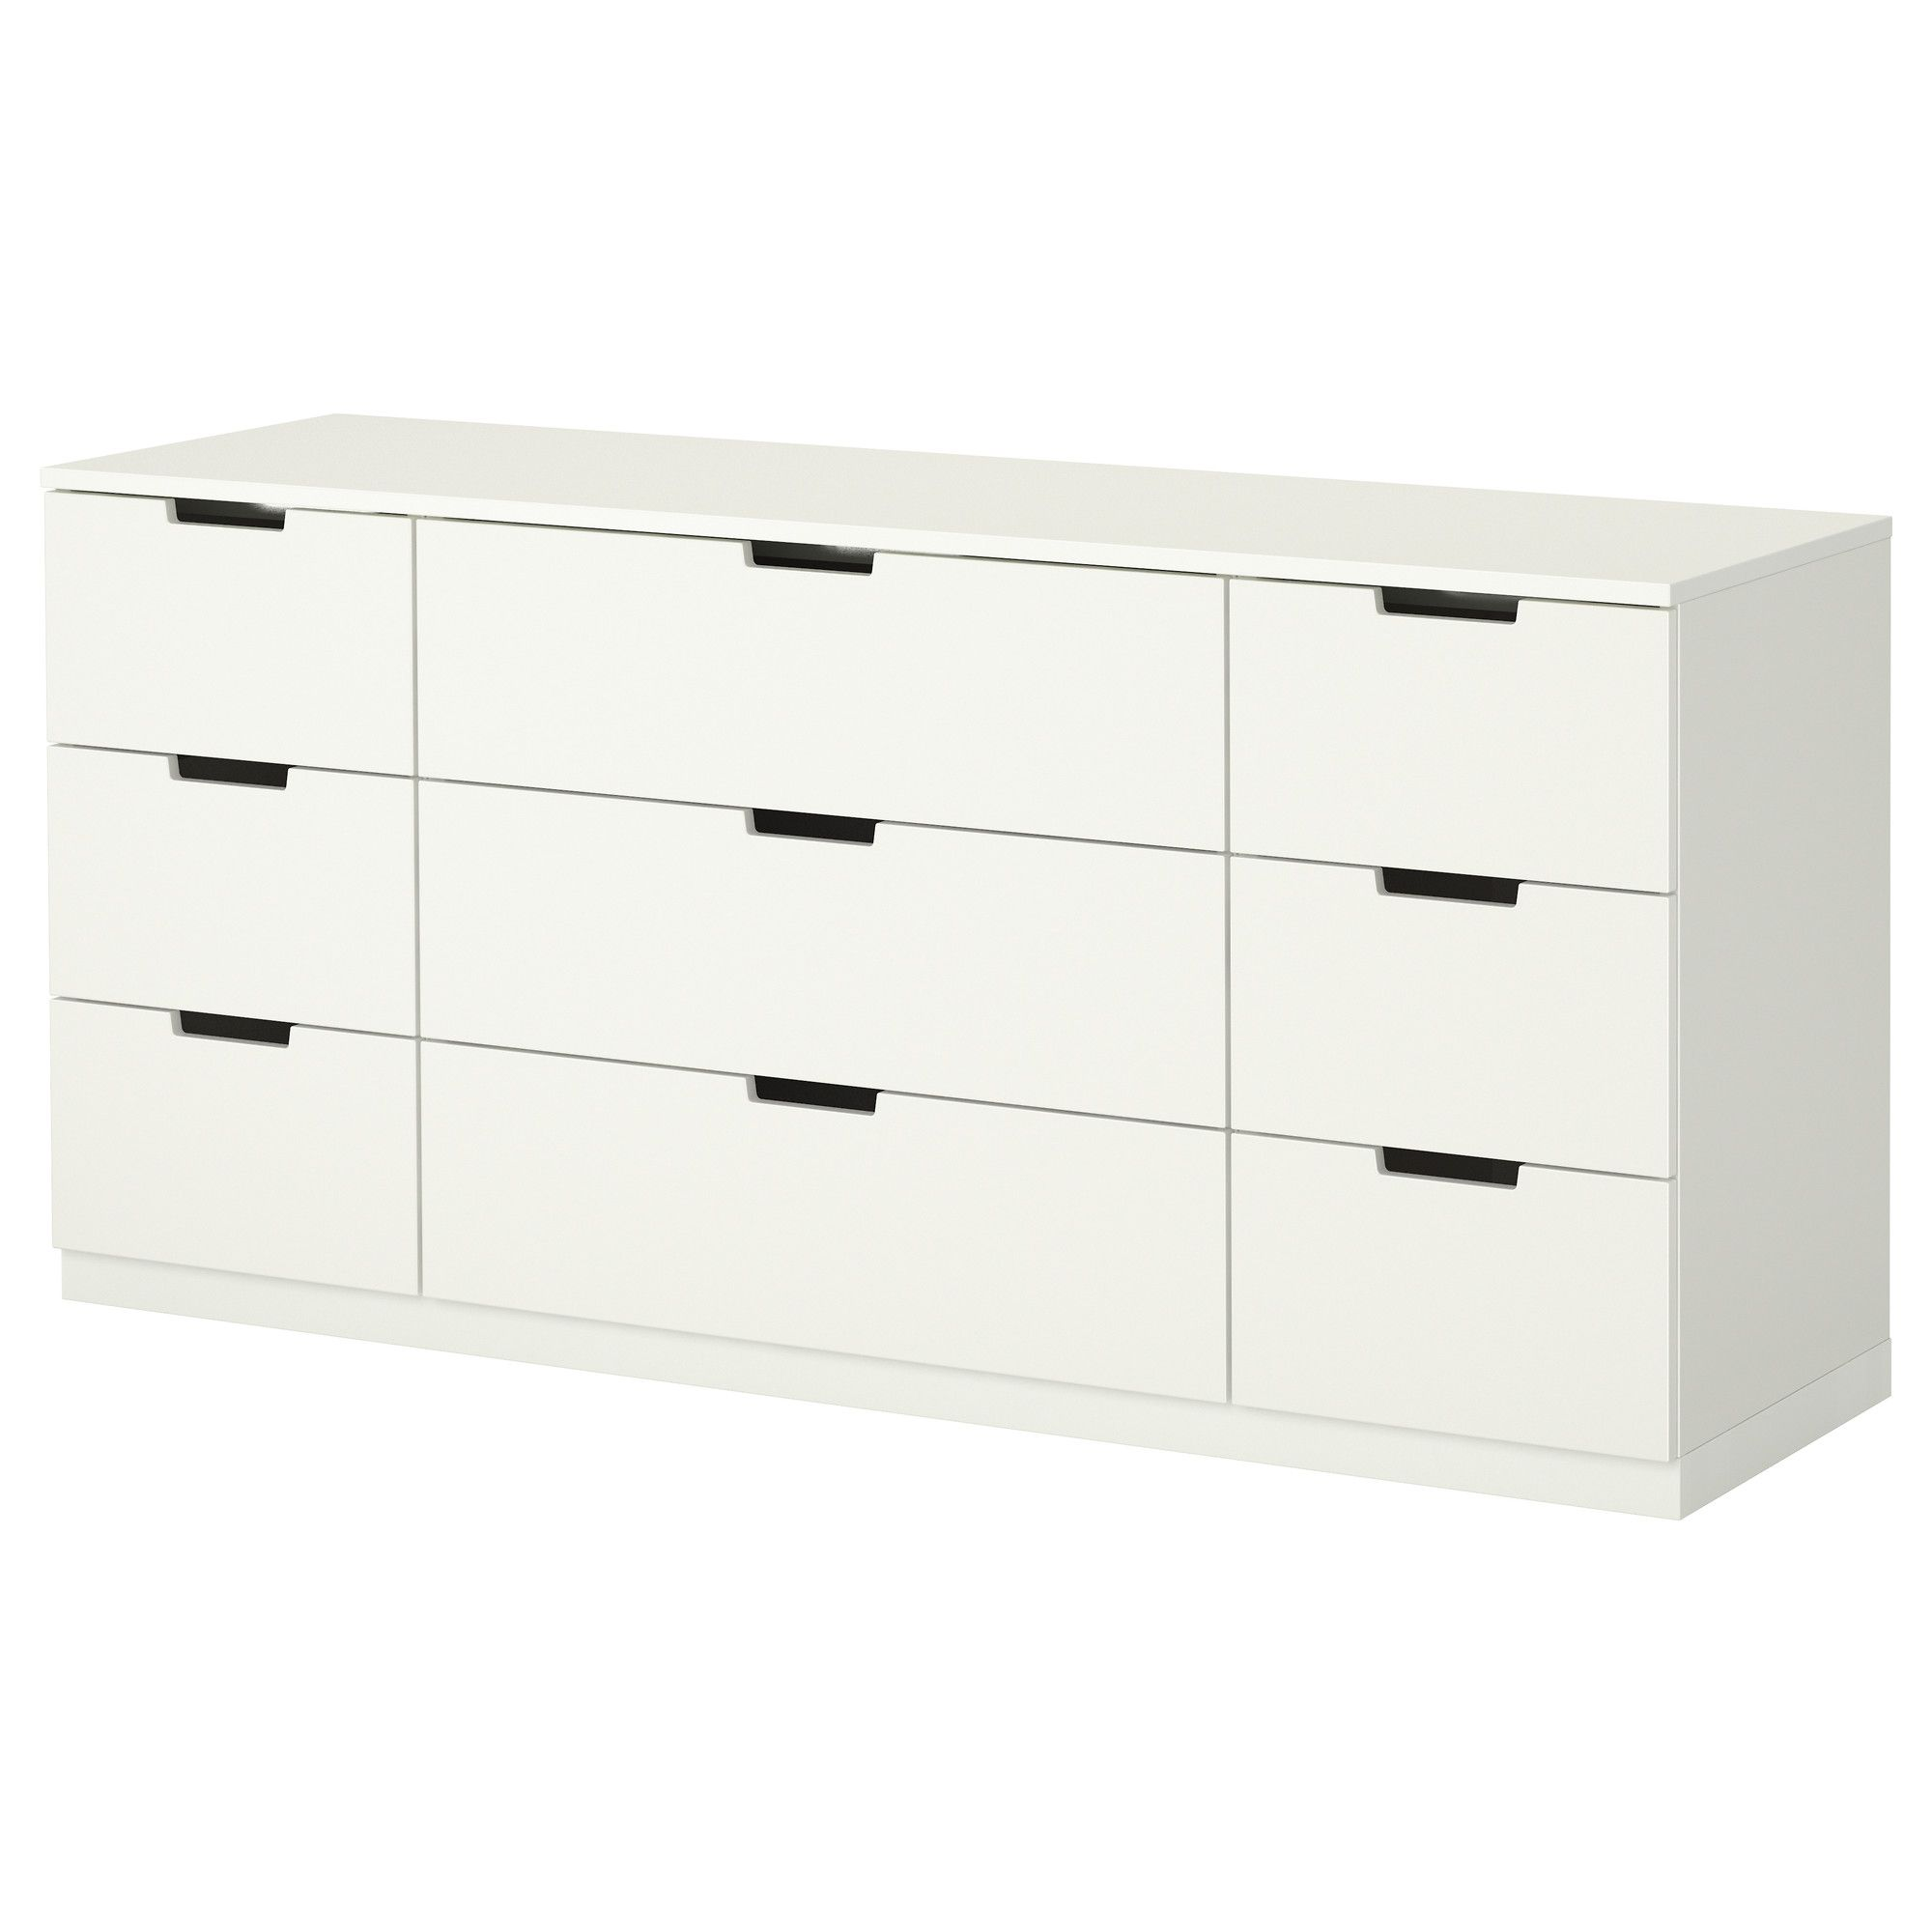 full storage size chest dresser built conjunction together drawers closet of for with in